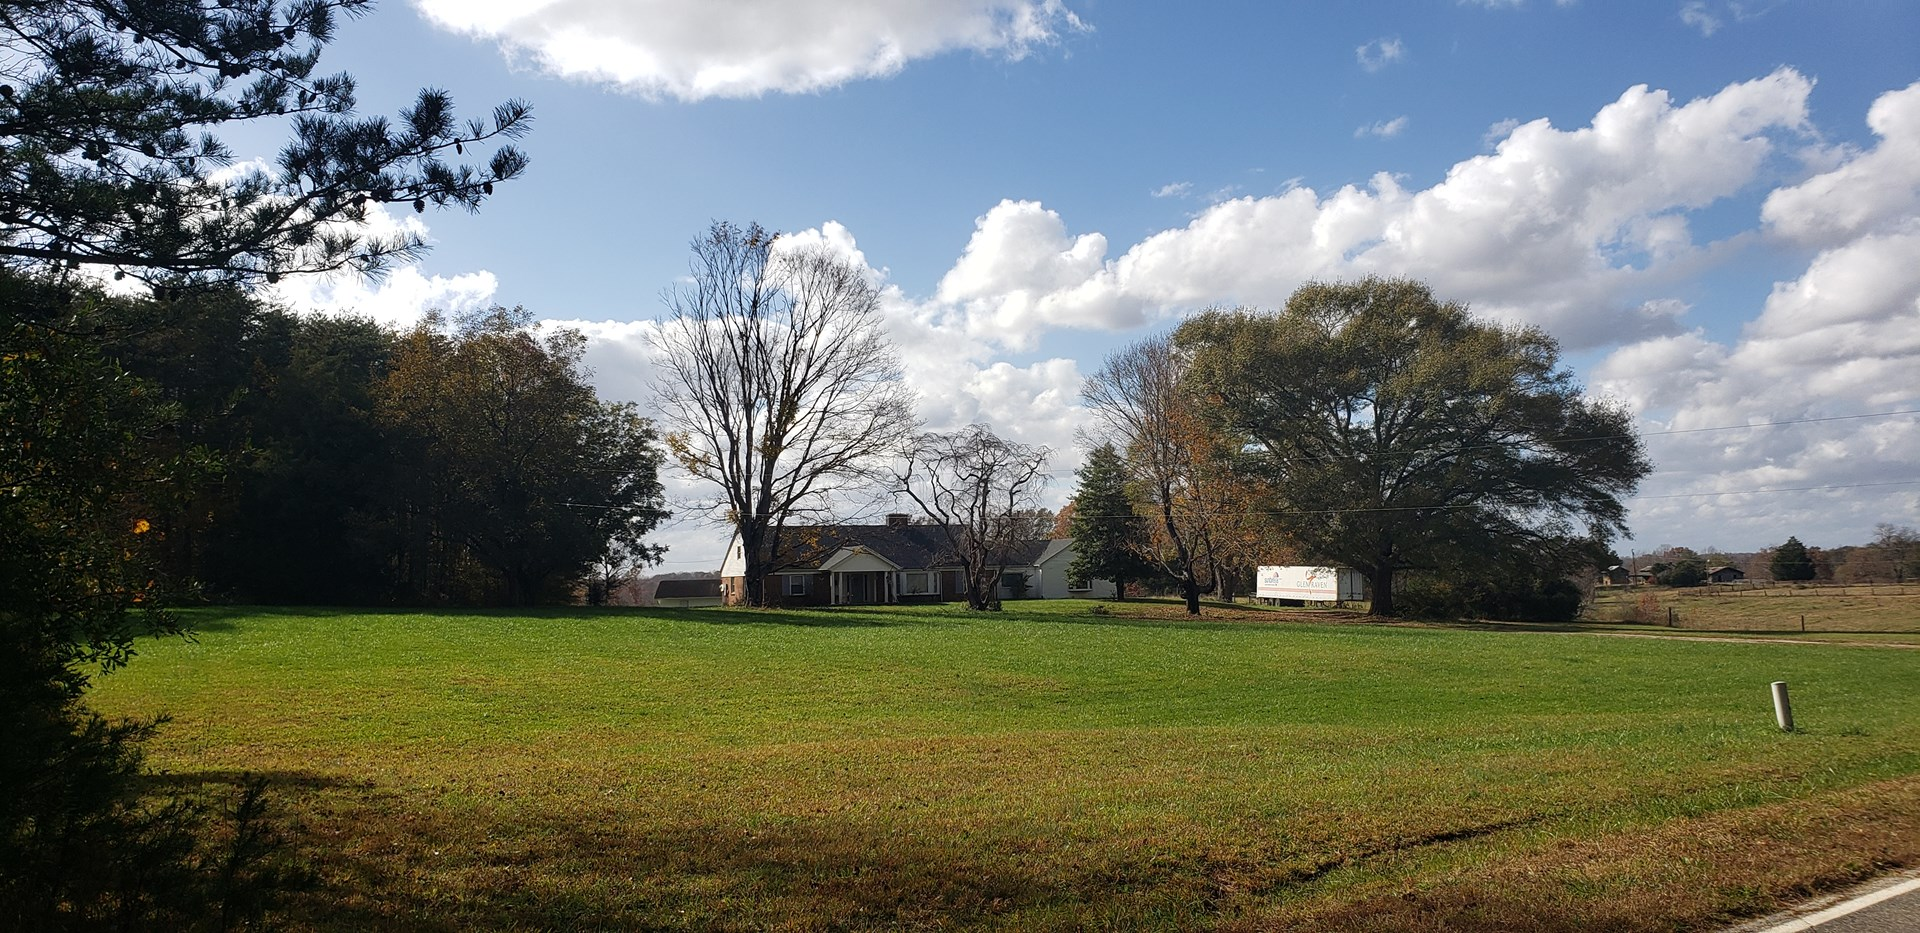 +-300 acres of blanket of possibilities in North Carolina